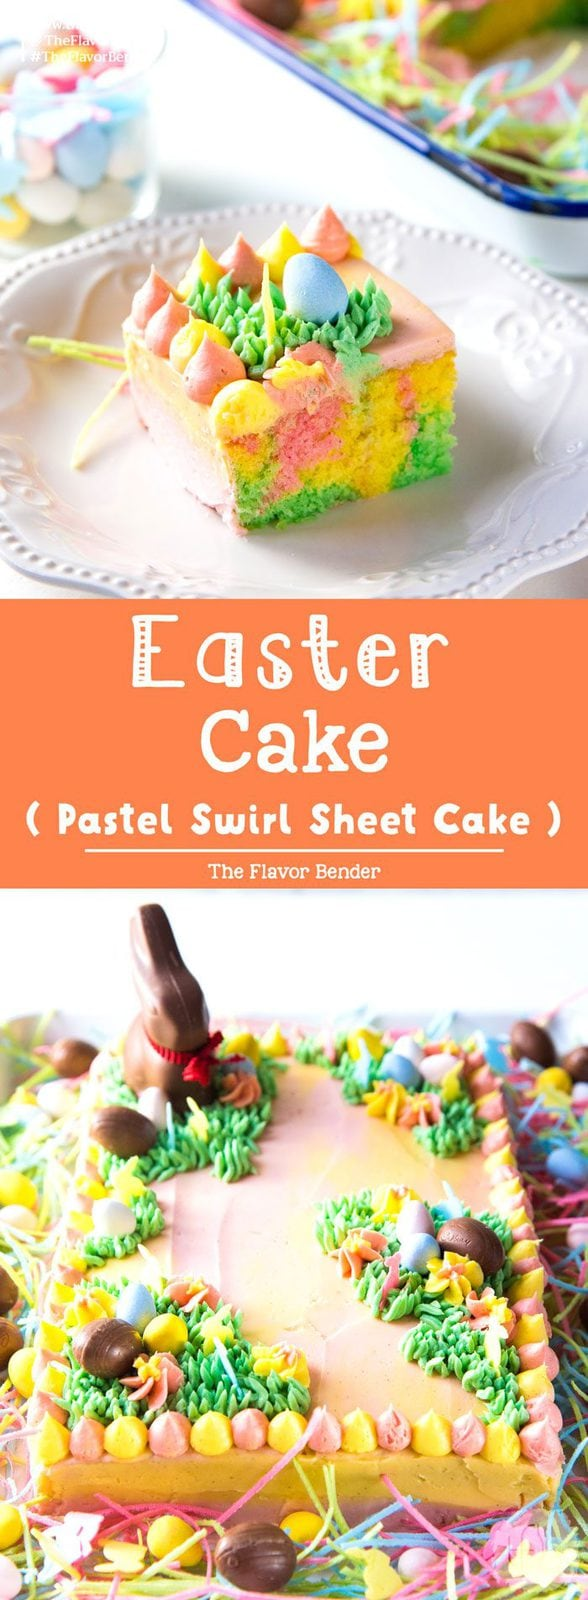 Pastel Easter Cake - This gorgeous Easter sheet cake is a cinch to decorate with buttercream decorations and your favourite Easter candy! It's perfect for a crowd and is the best buttery and soft vanilla cake! #EasterCakeDecorating #EasterCakes #PastelEasterCake